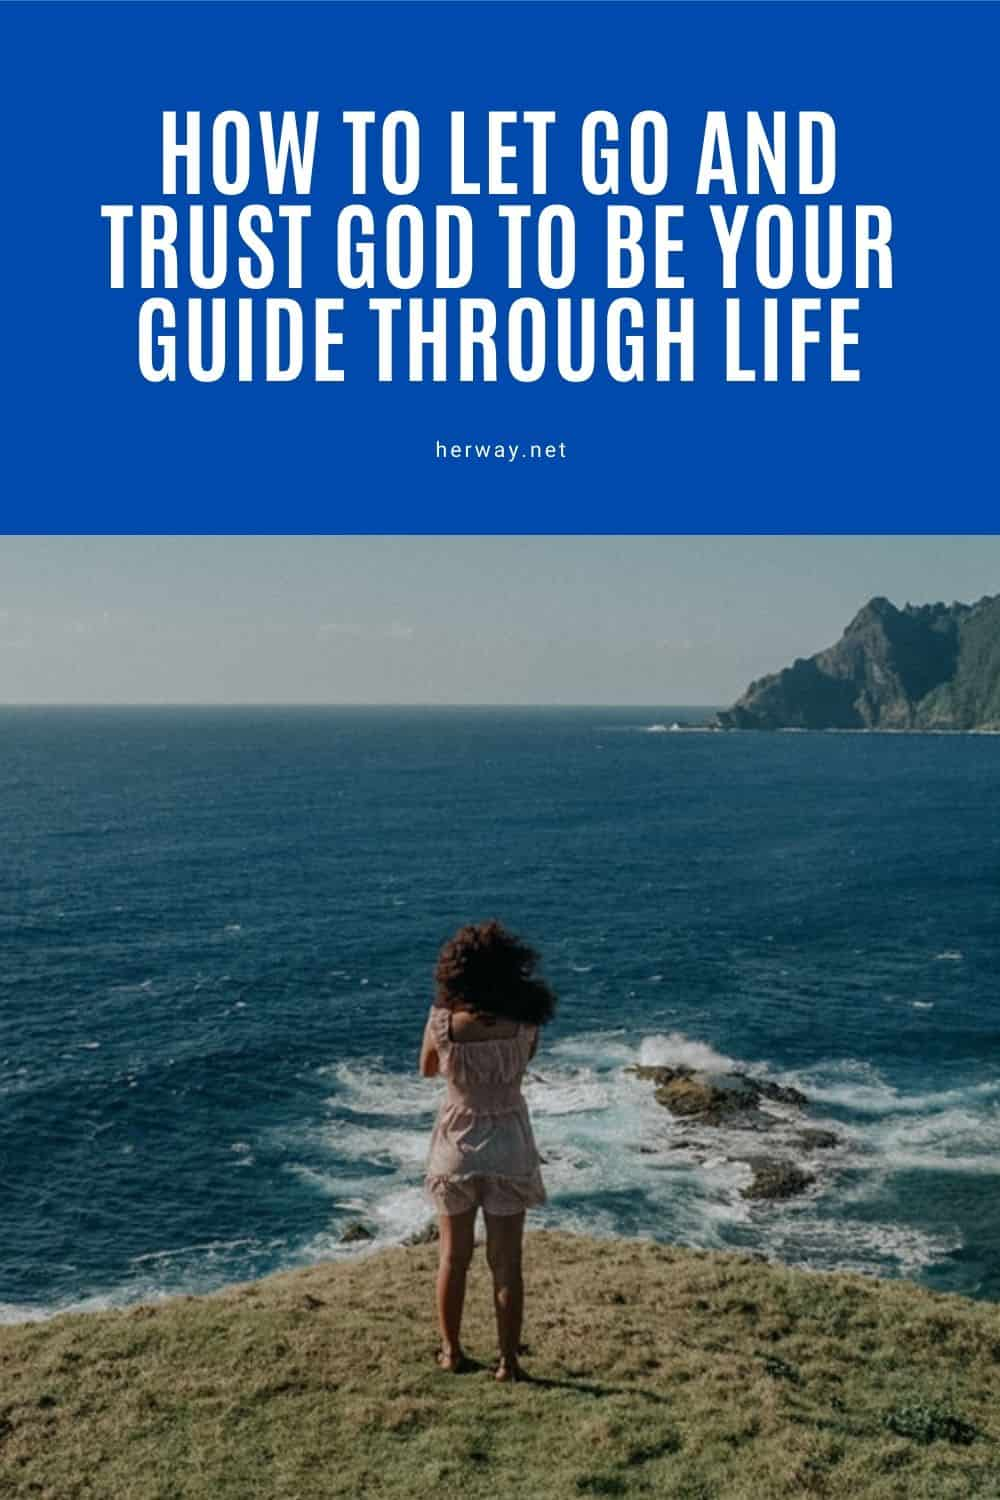 How To Let Go And Trust God To Be Your Guide Through Life